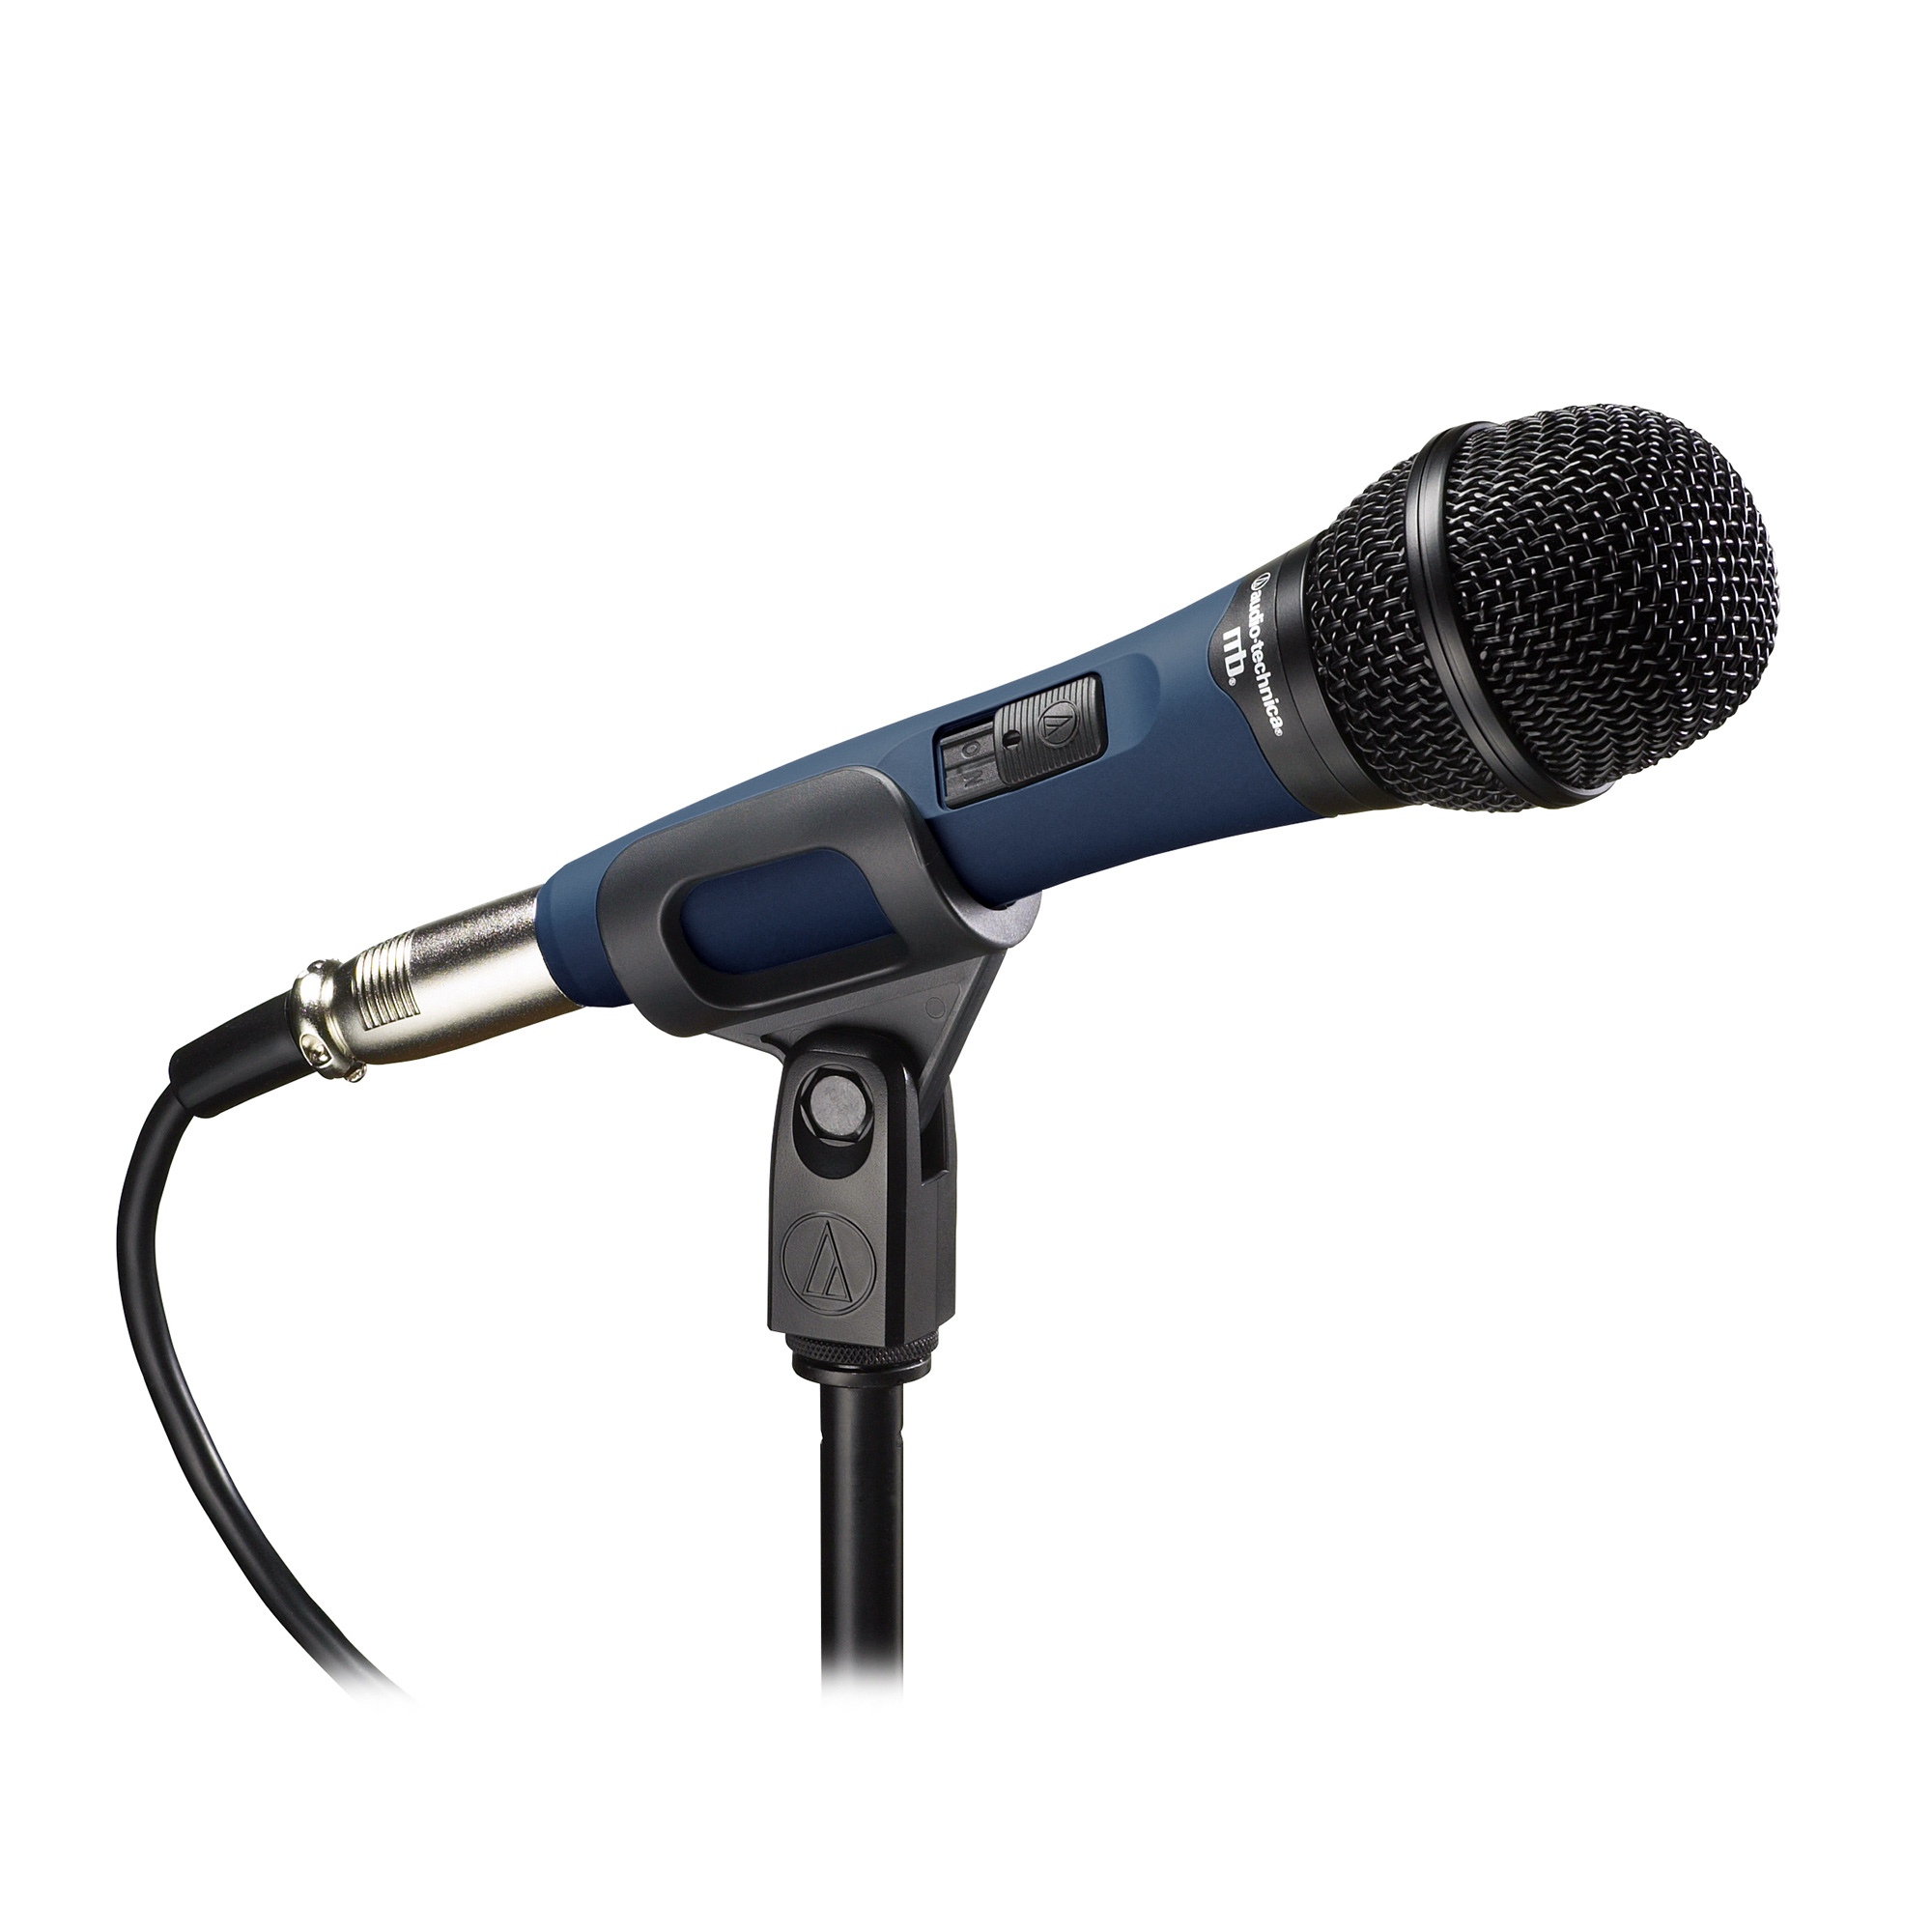 Microphone With Cord : Audio technica mb k c handheld hypercardioid dynamic